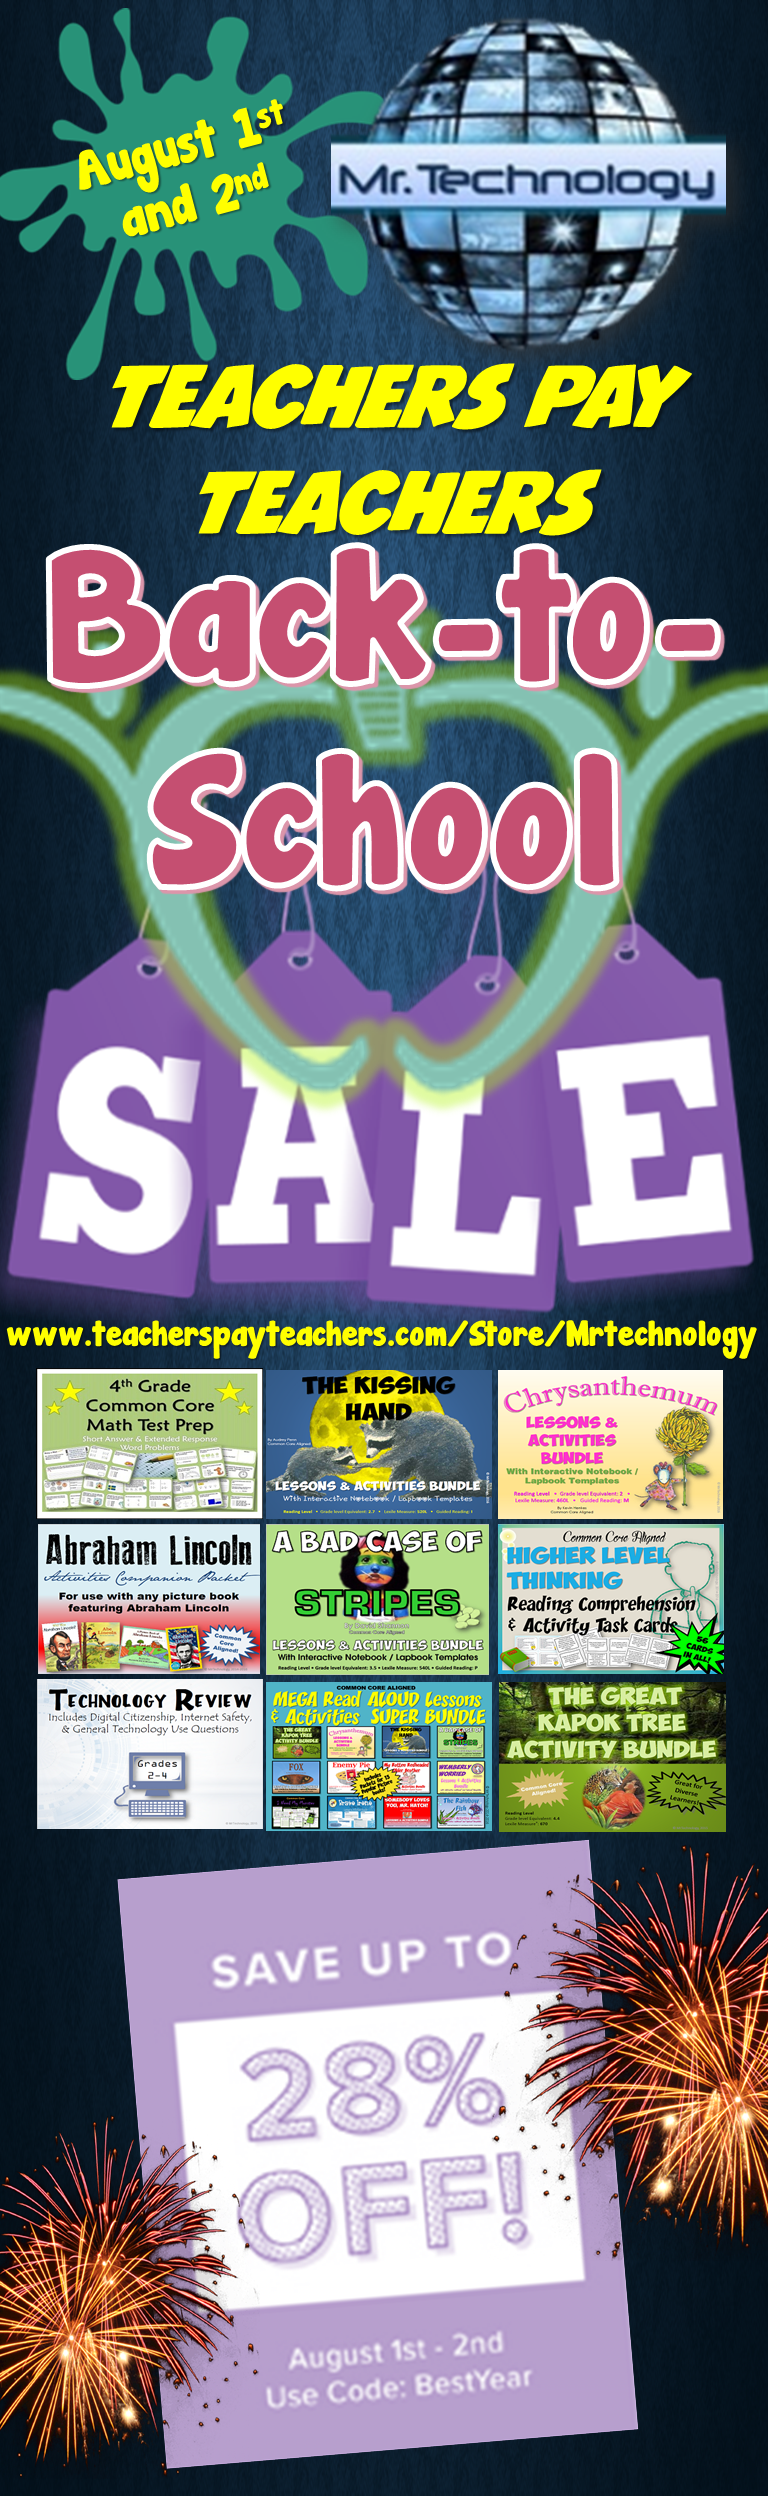 Save 28% on EVERYTHING in the #MrTechnology #TeachersPayTeachers Store! August 1st and 2nd!